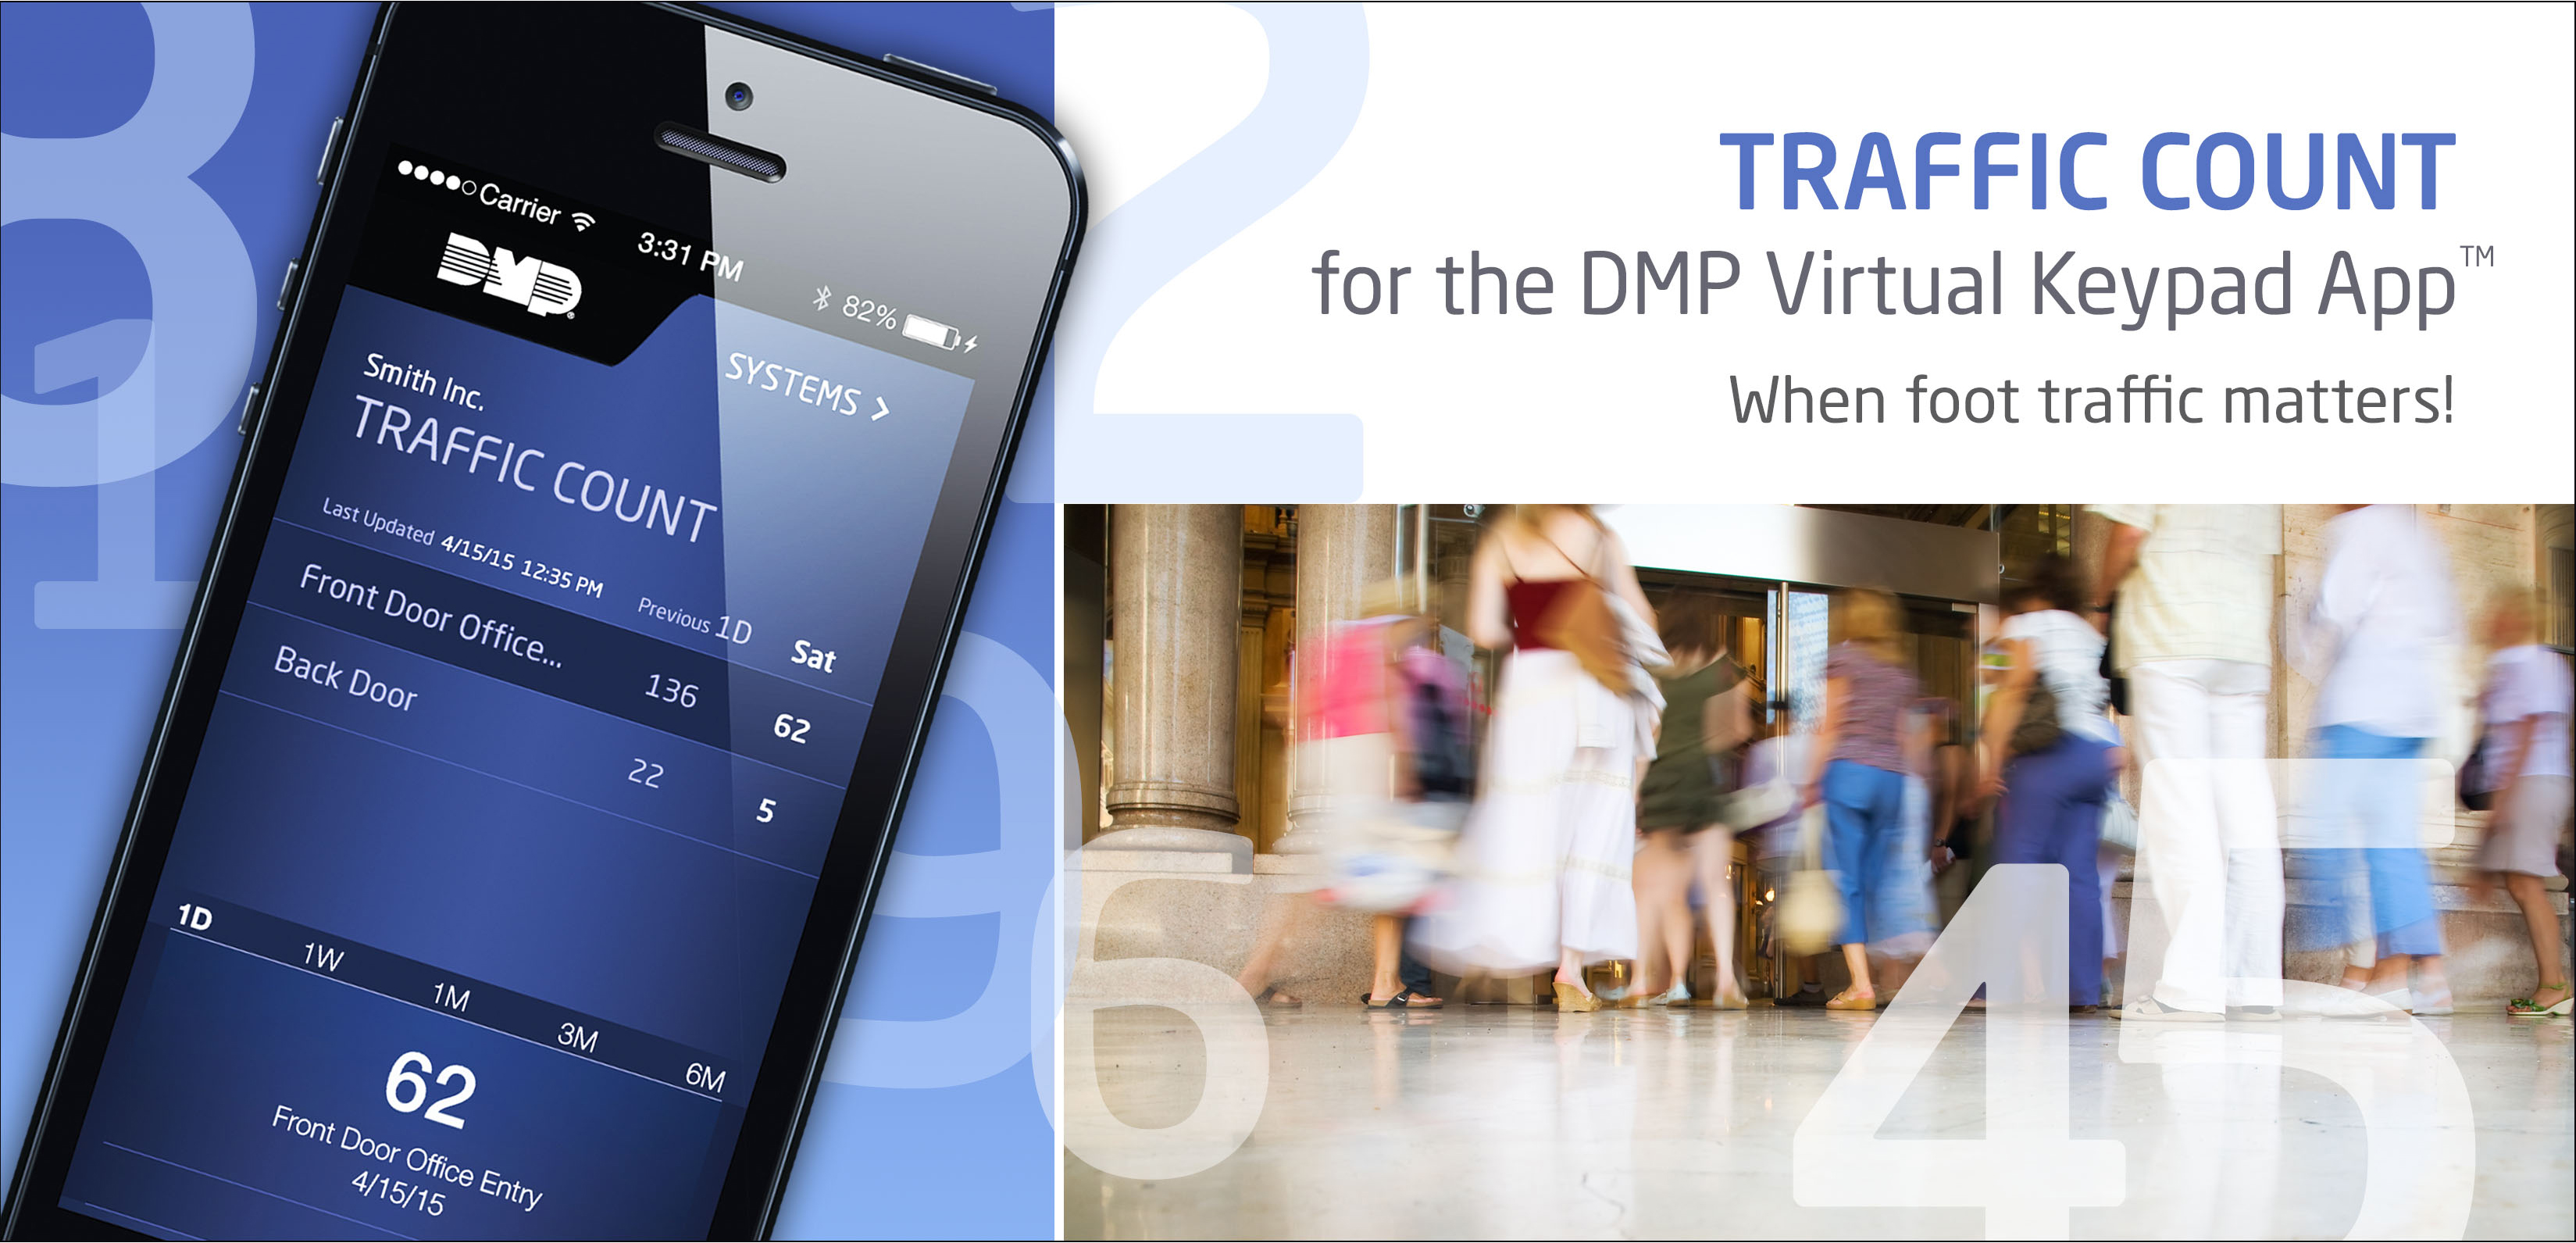 DMP Introduces Traffic Count for the Virtual Keypad™ App